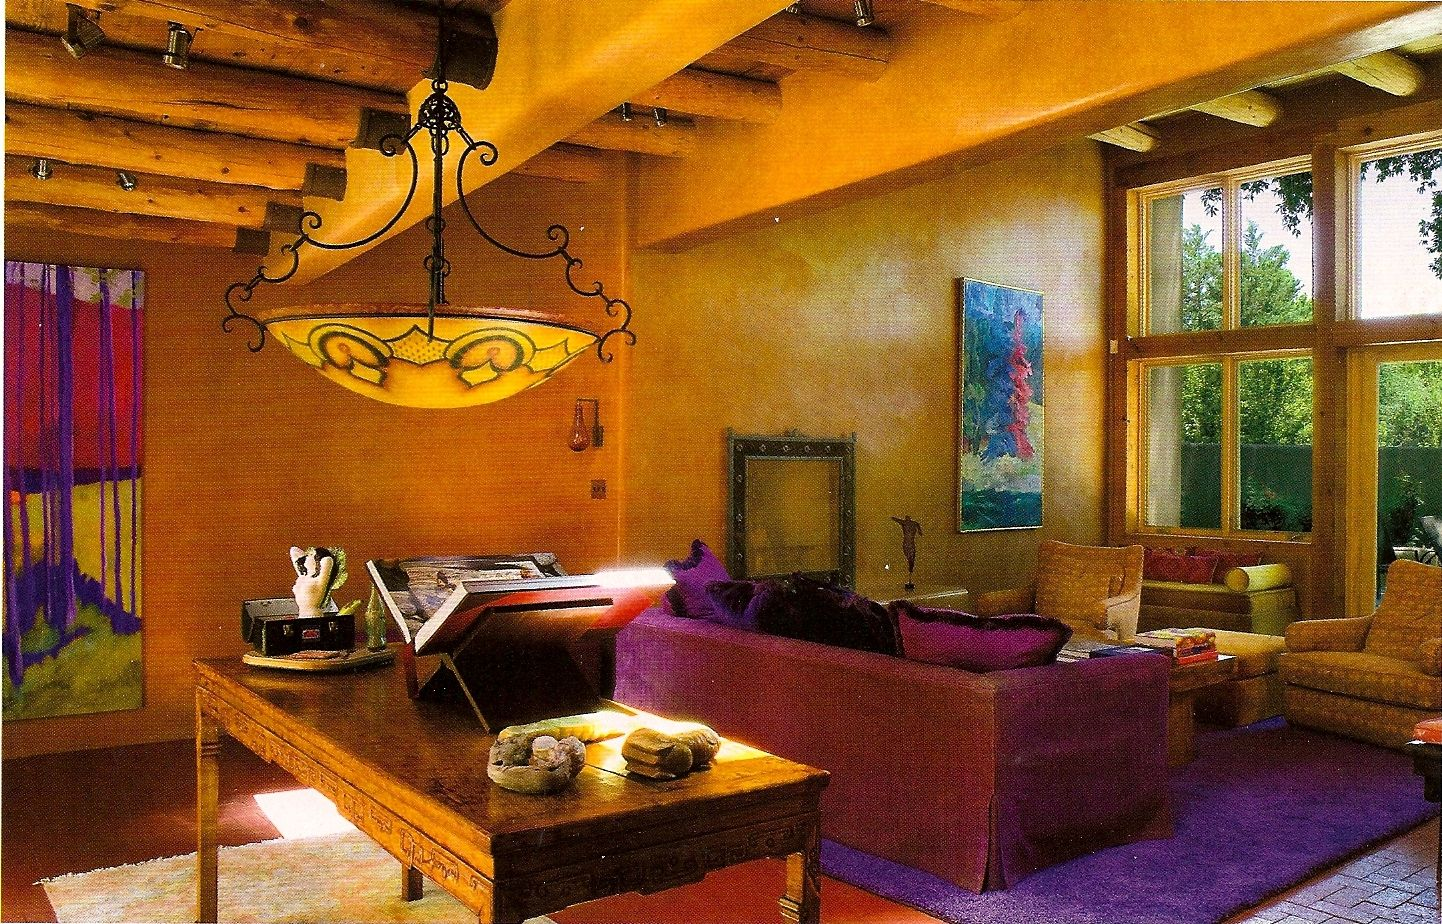 Coolest New Mexico Interior Design Ideas 3 #11930 | Mexican ...